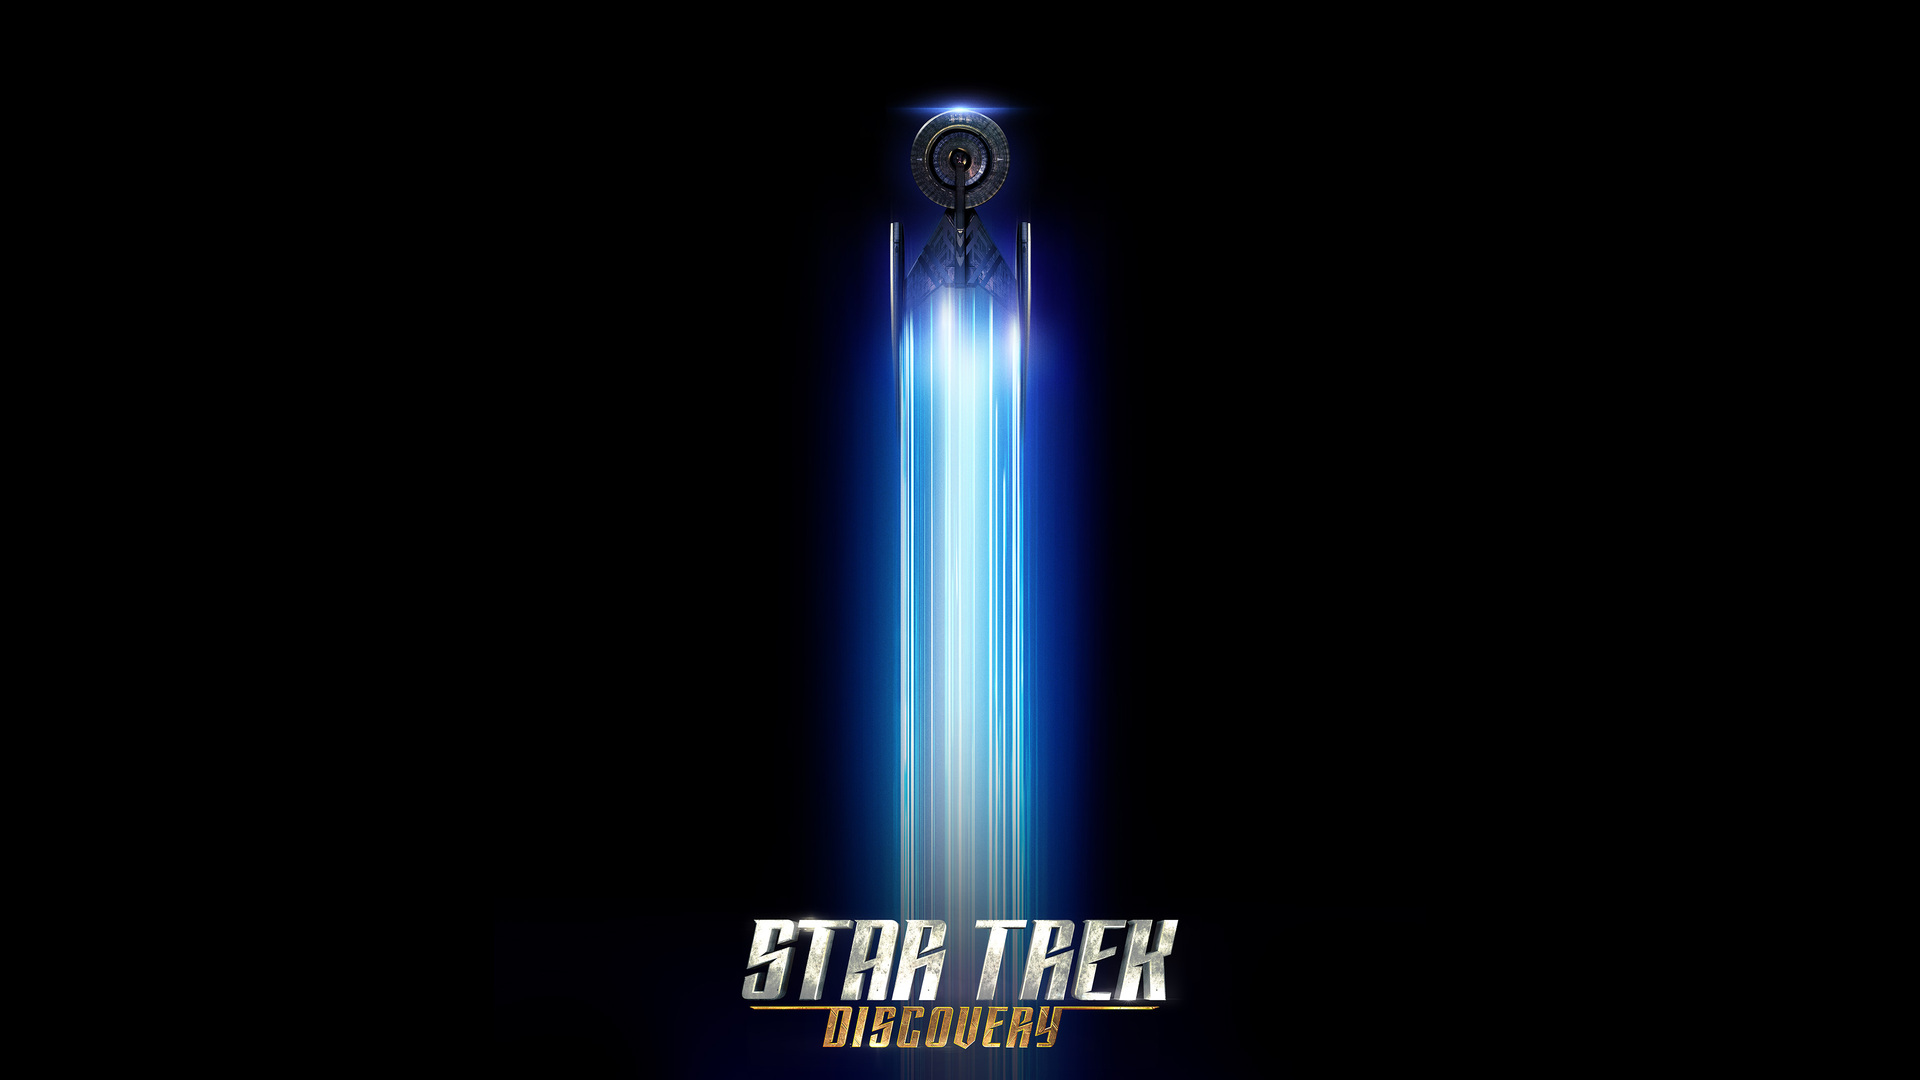 Star Trek Discovery Wallpaper Hd: 1920x1080 Star Trek Discovery 4k Laptop Full HD 1080P HD